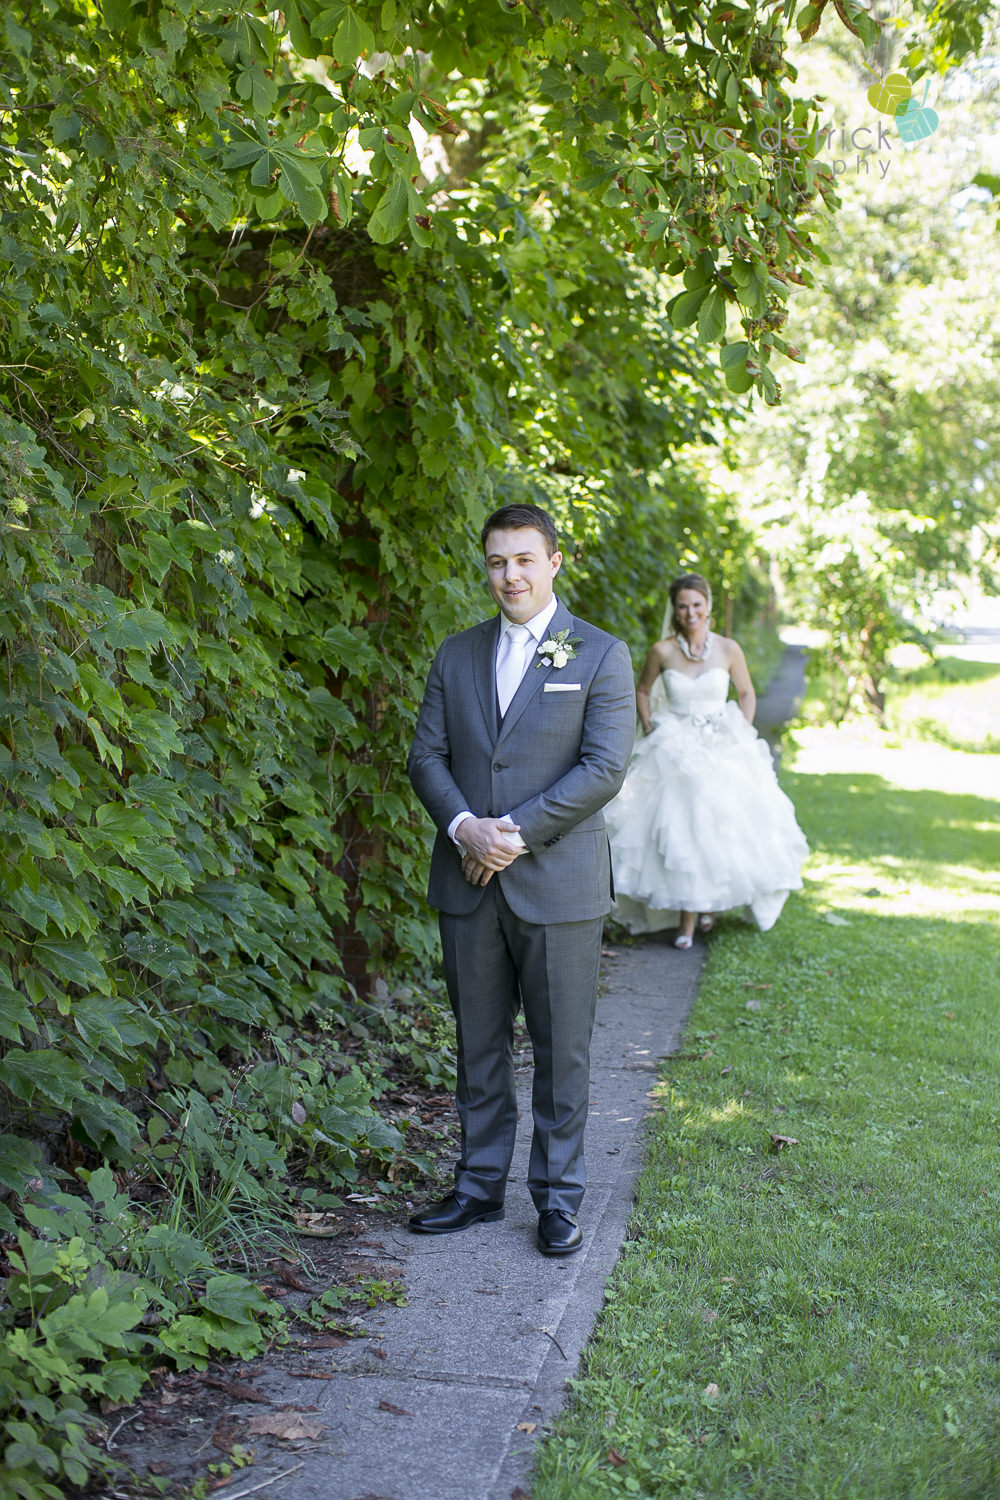 Pillar-and-Post-Weddings-Niagara-on-the-Lake-Vintage-Hotels-wedding-photo-by-eva-derrick-photography-017.JPG